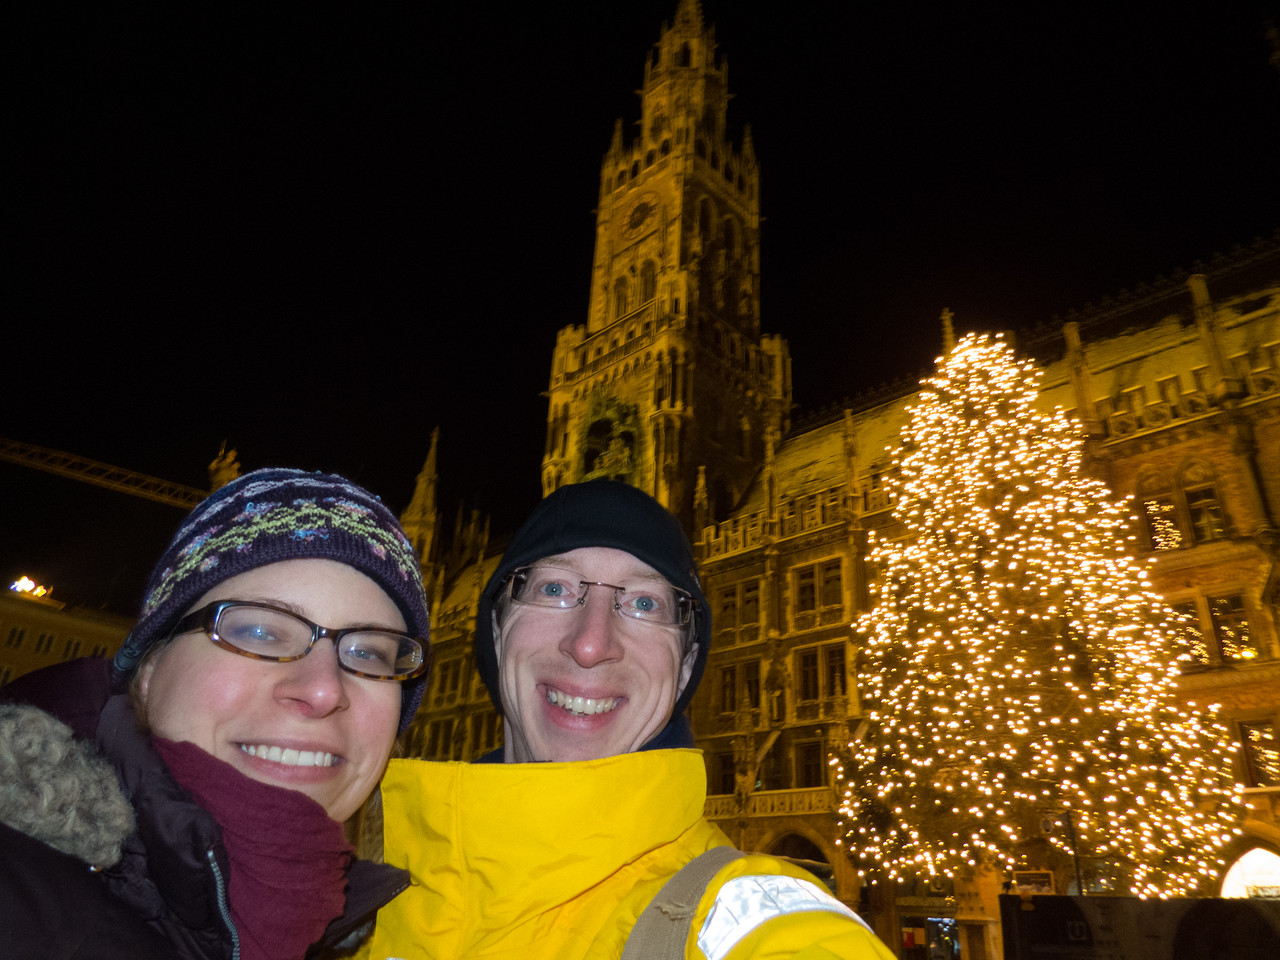 Outside the Neues Rathaus